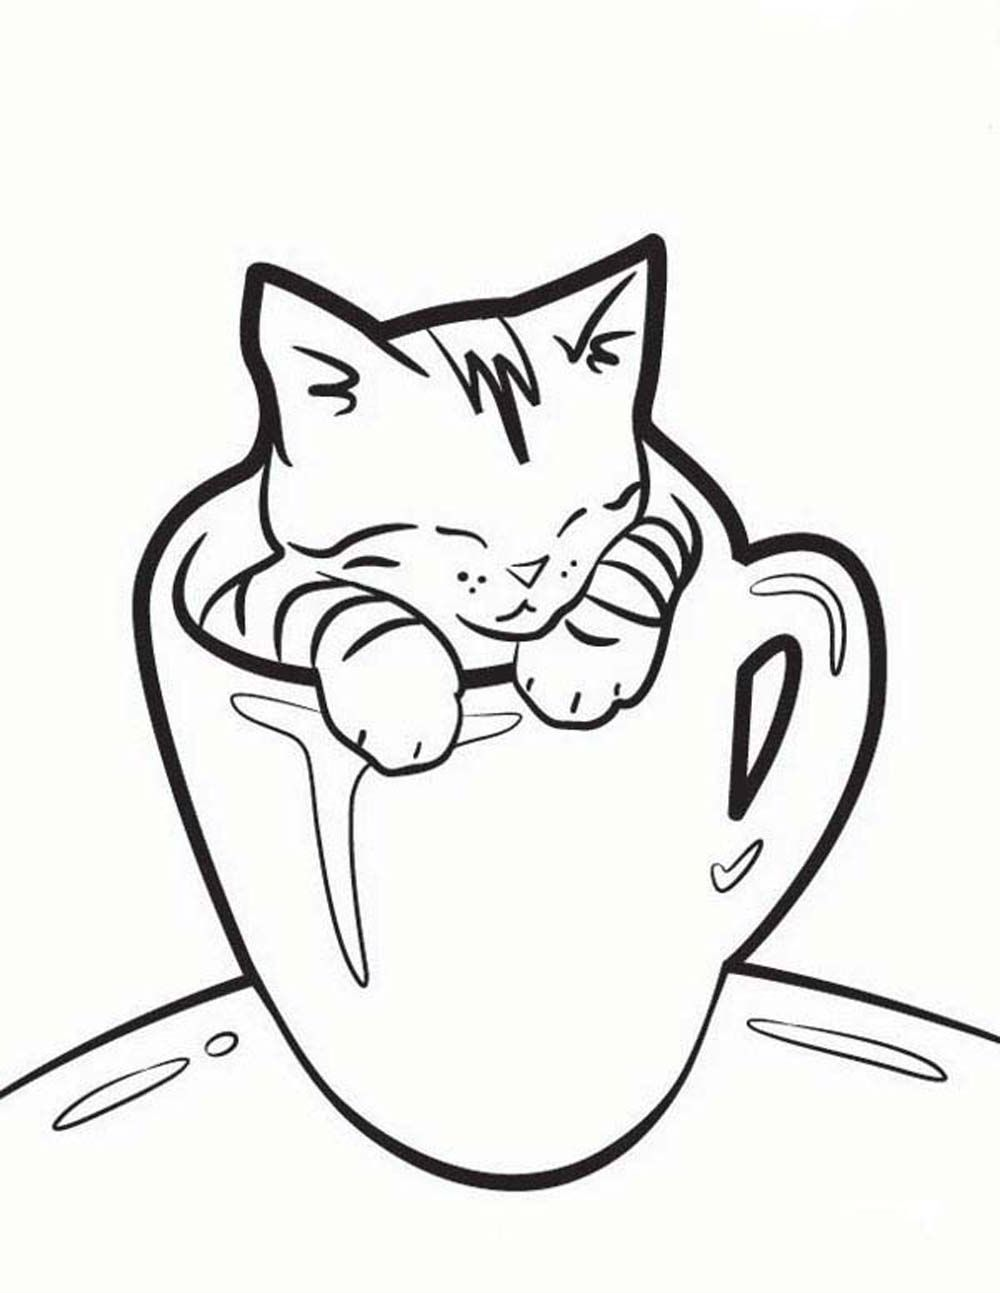 Free printable coloring pages of cats - Cat Coloring Pages Printable Jpg 1000 1293 Colouring Pages Pinterest Scrapbook